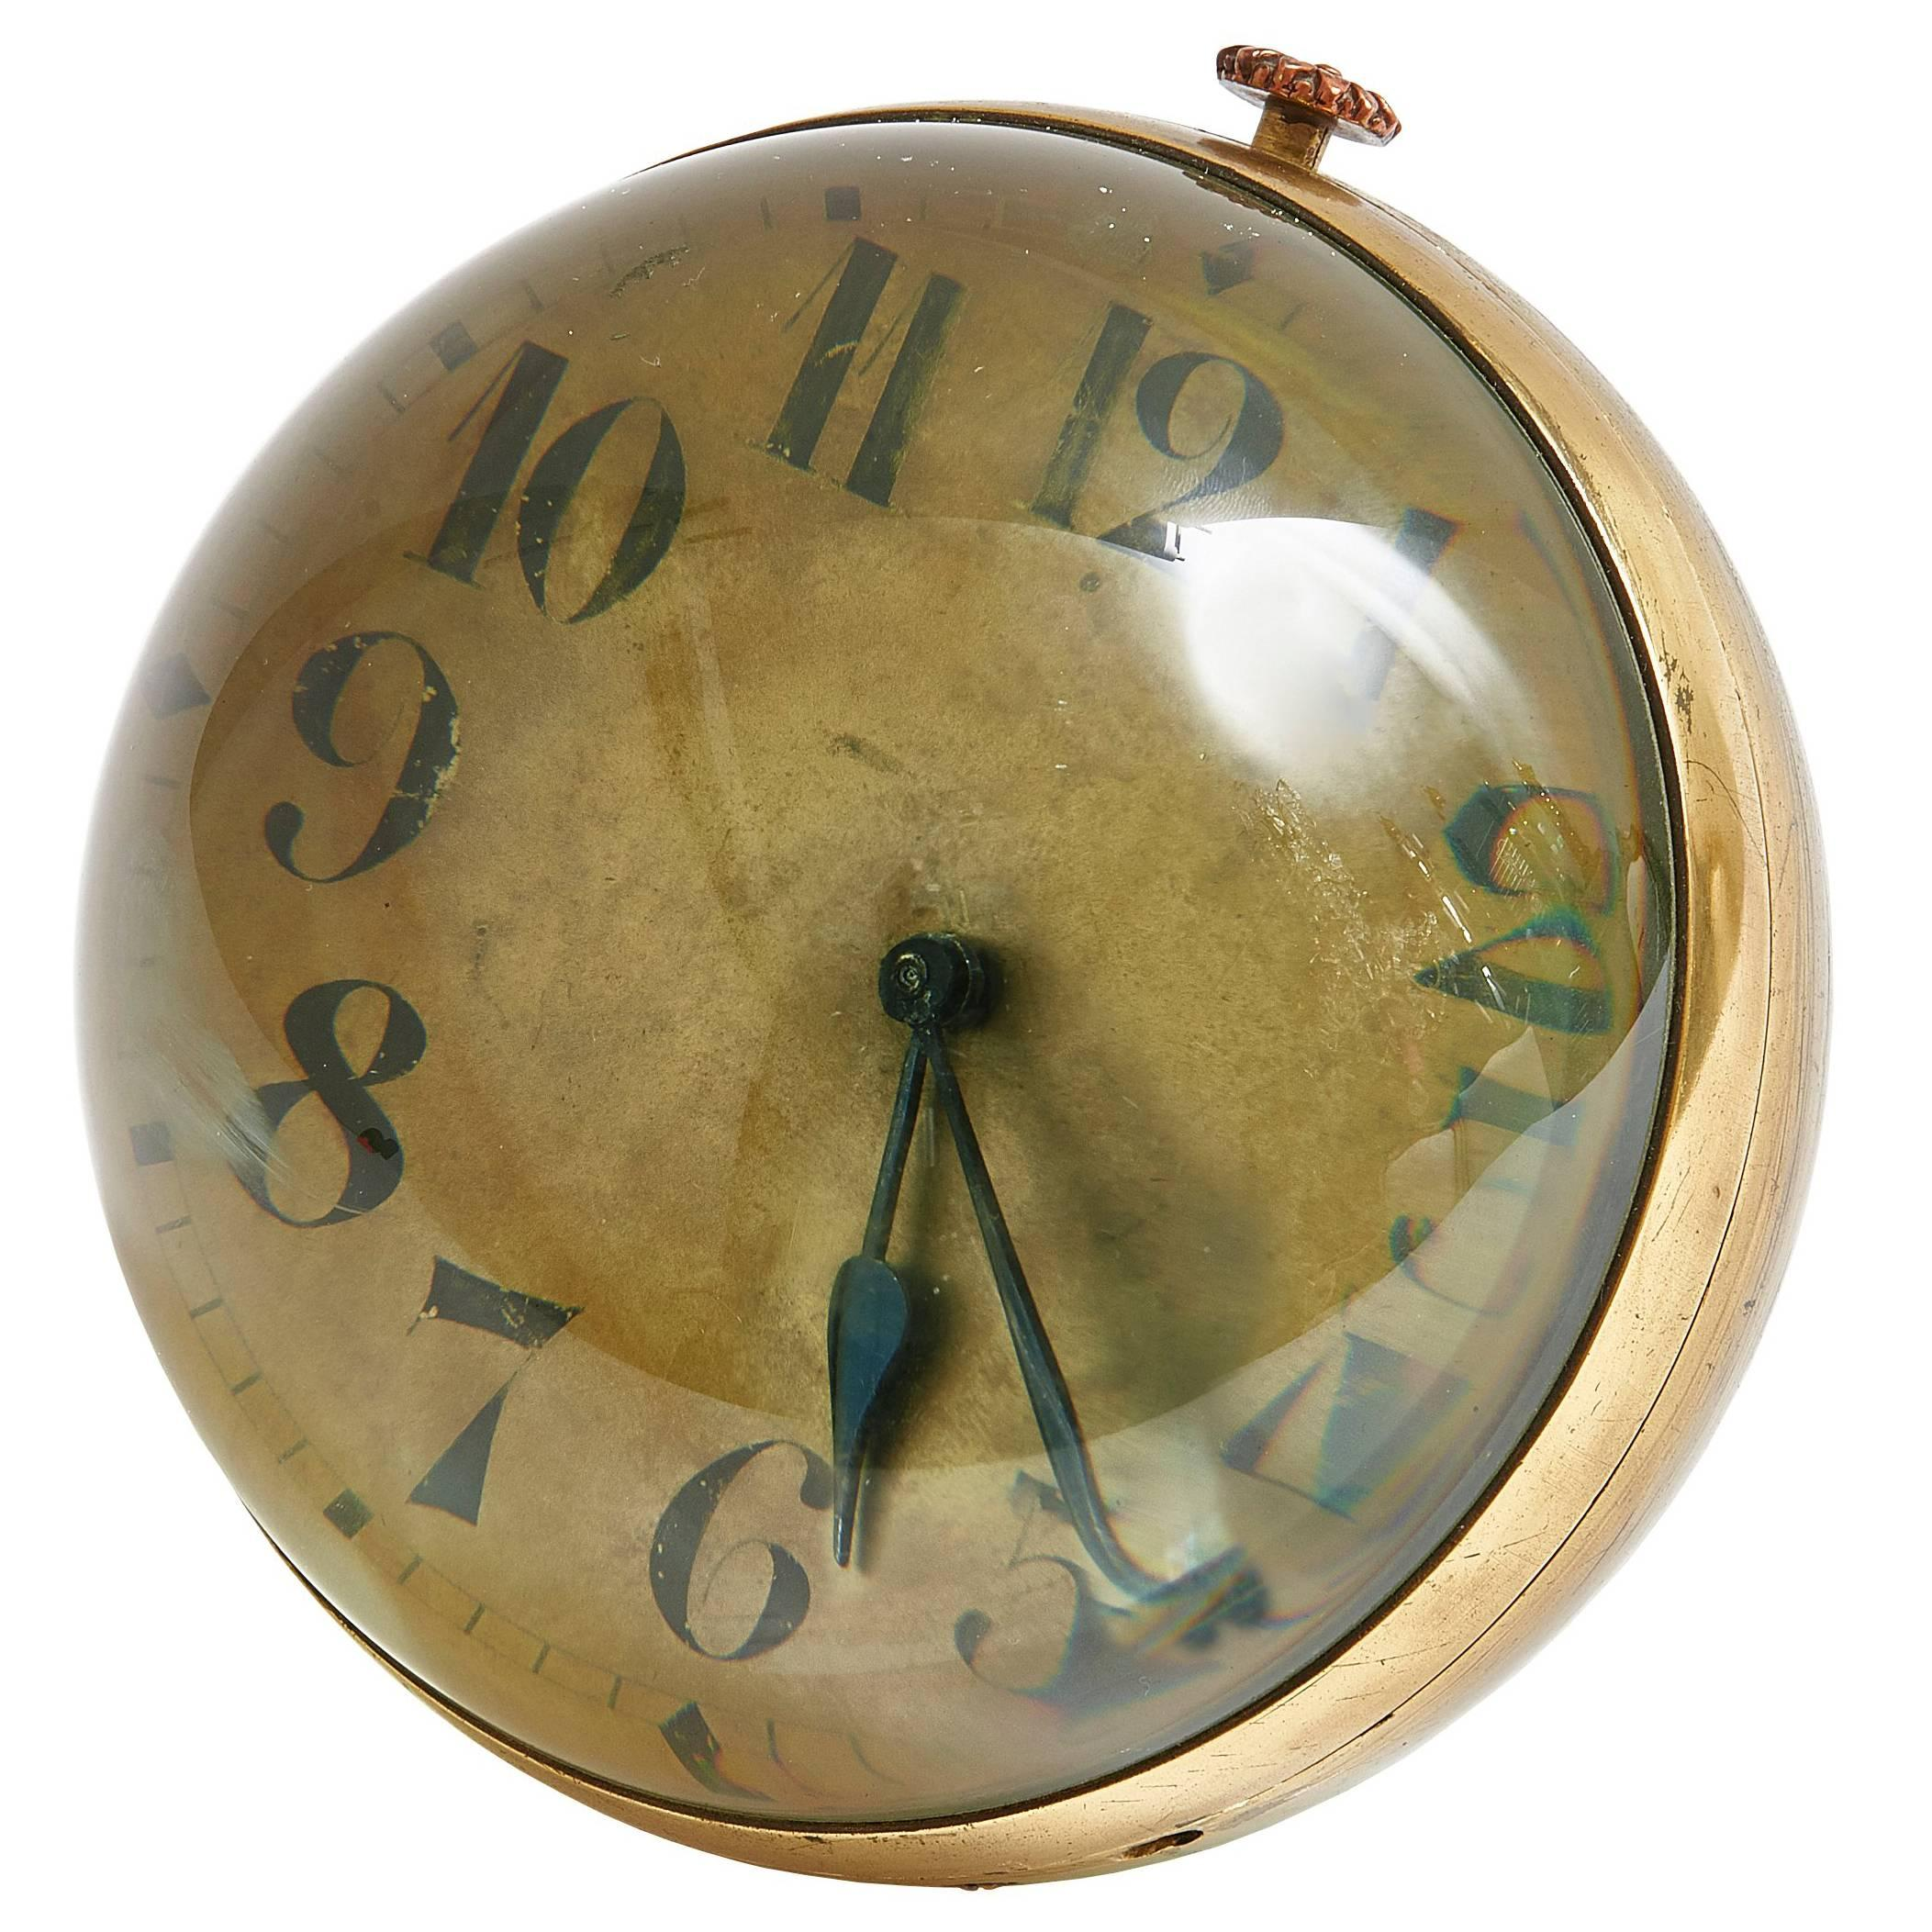 Very Large Continental Glass Ball Clock with Gilt Dial